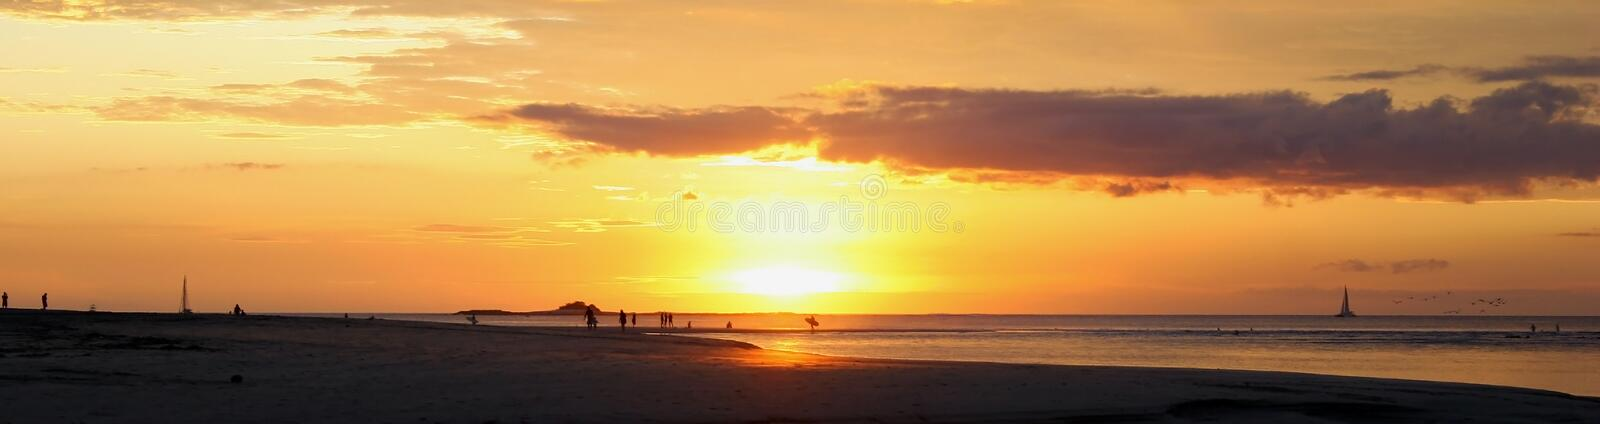 Surfistas na praia no por do sol imagem de stock royalty free